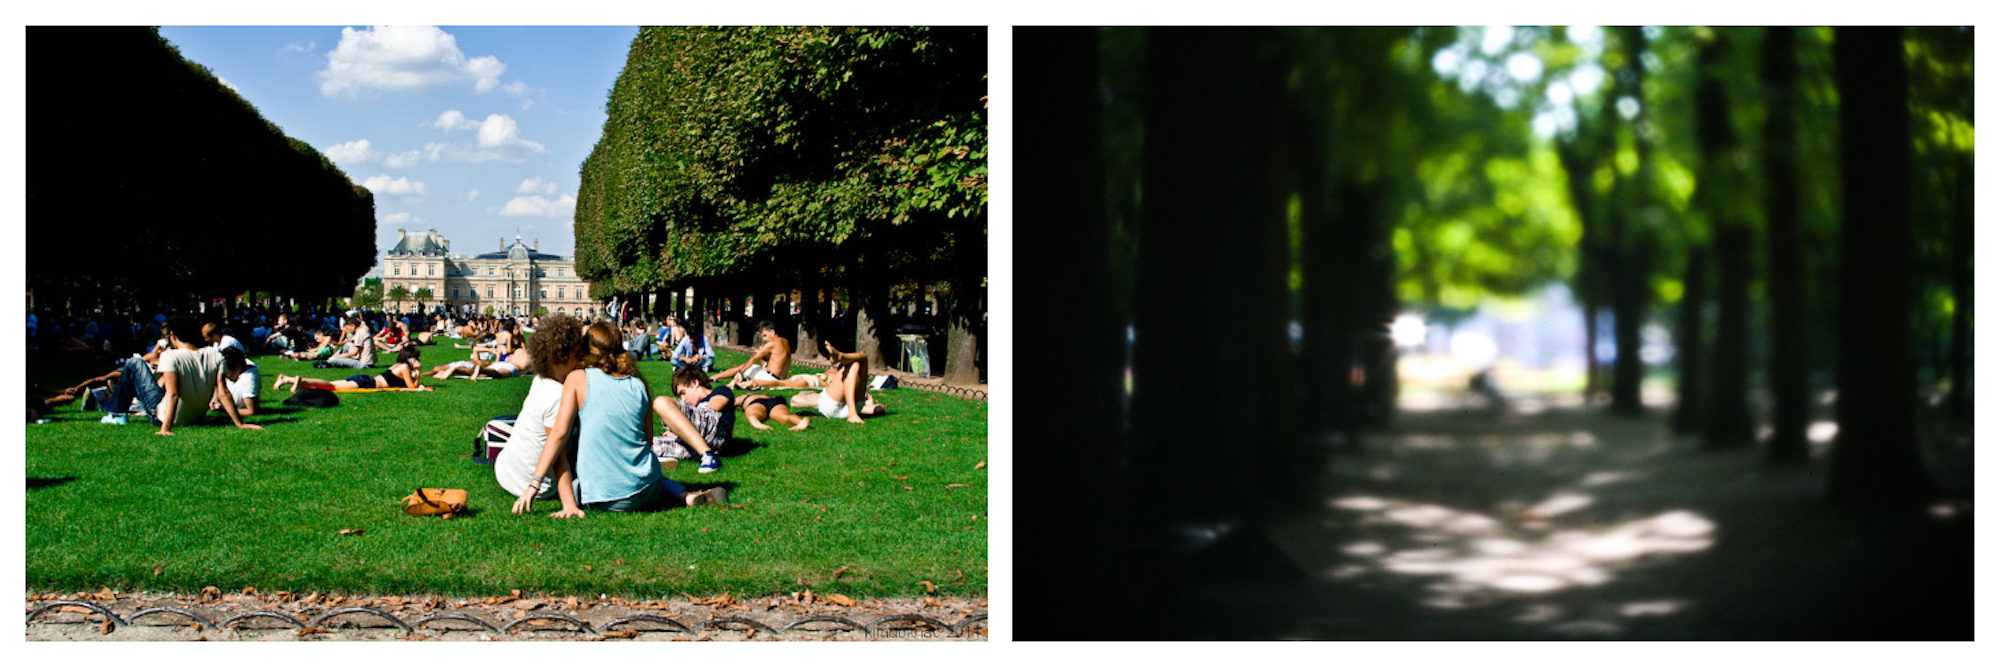 One of the best places to tan in Paris in summer is the Jardin de Luxembourg for its stretch of lawns (left) and tucked-away corners in the shade of swaying trees (right).